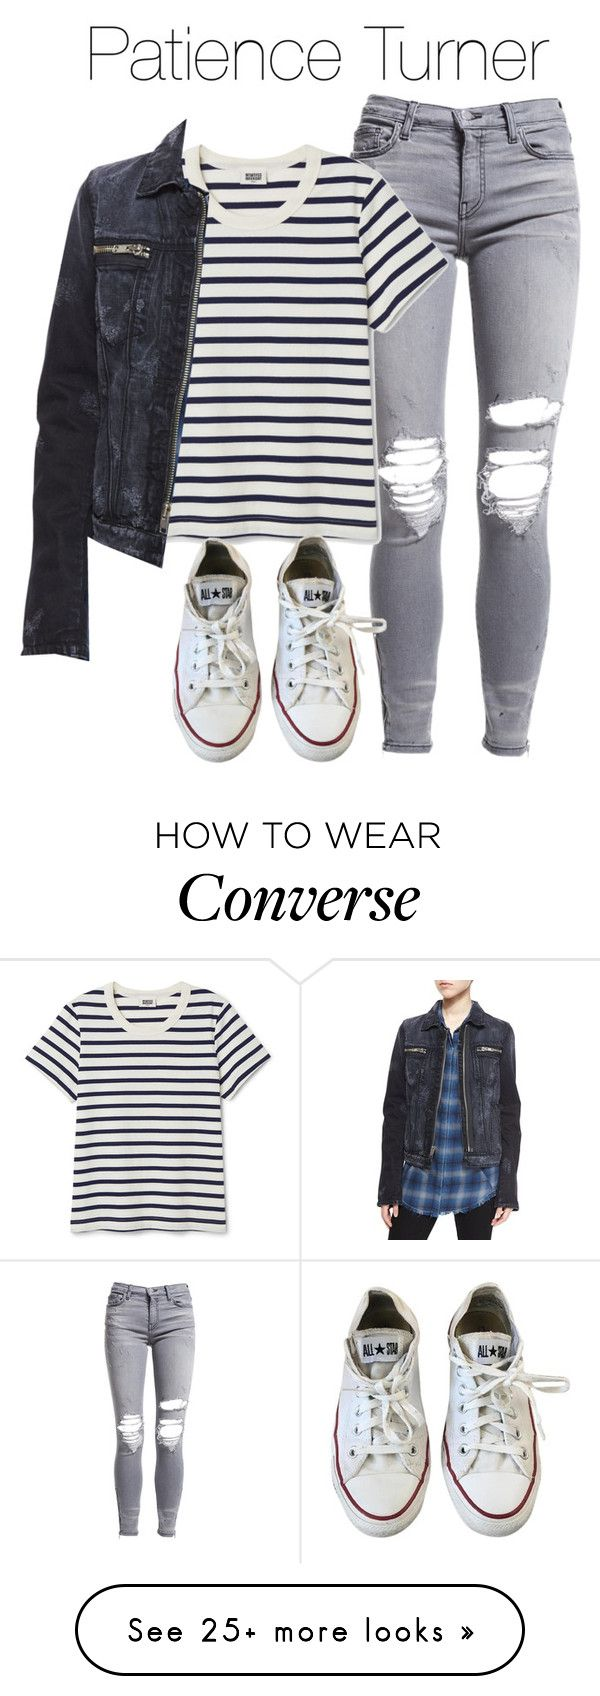 """""""Patience Inspired Outfit"""" by demiwitch-of-mischief on Polyvore featuring AMIRI, RtA, Converse, supernatural, spn, WaywardSisters and patienceturner"""